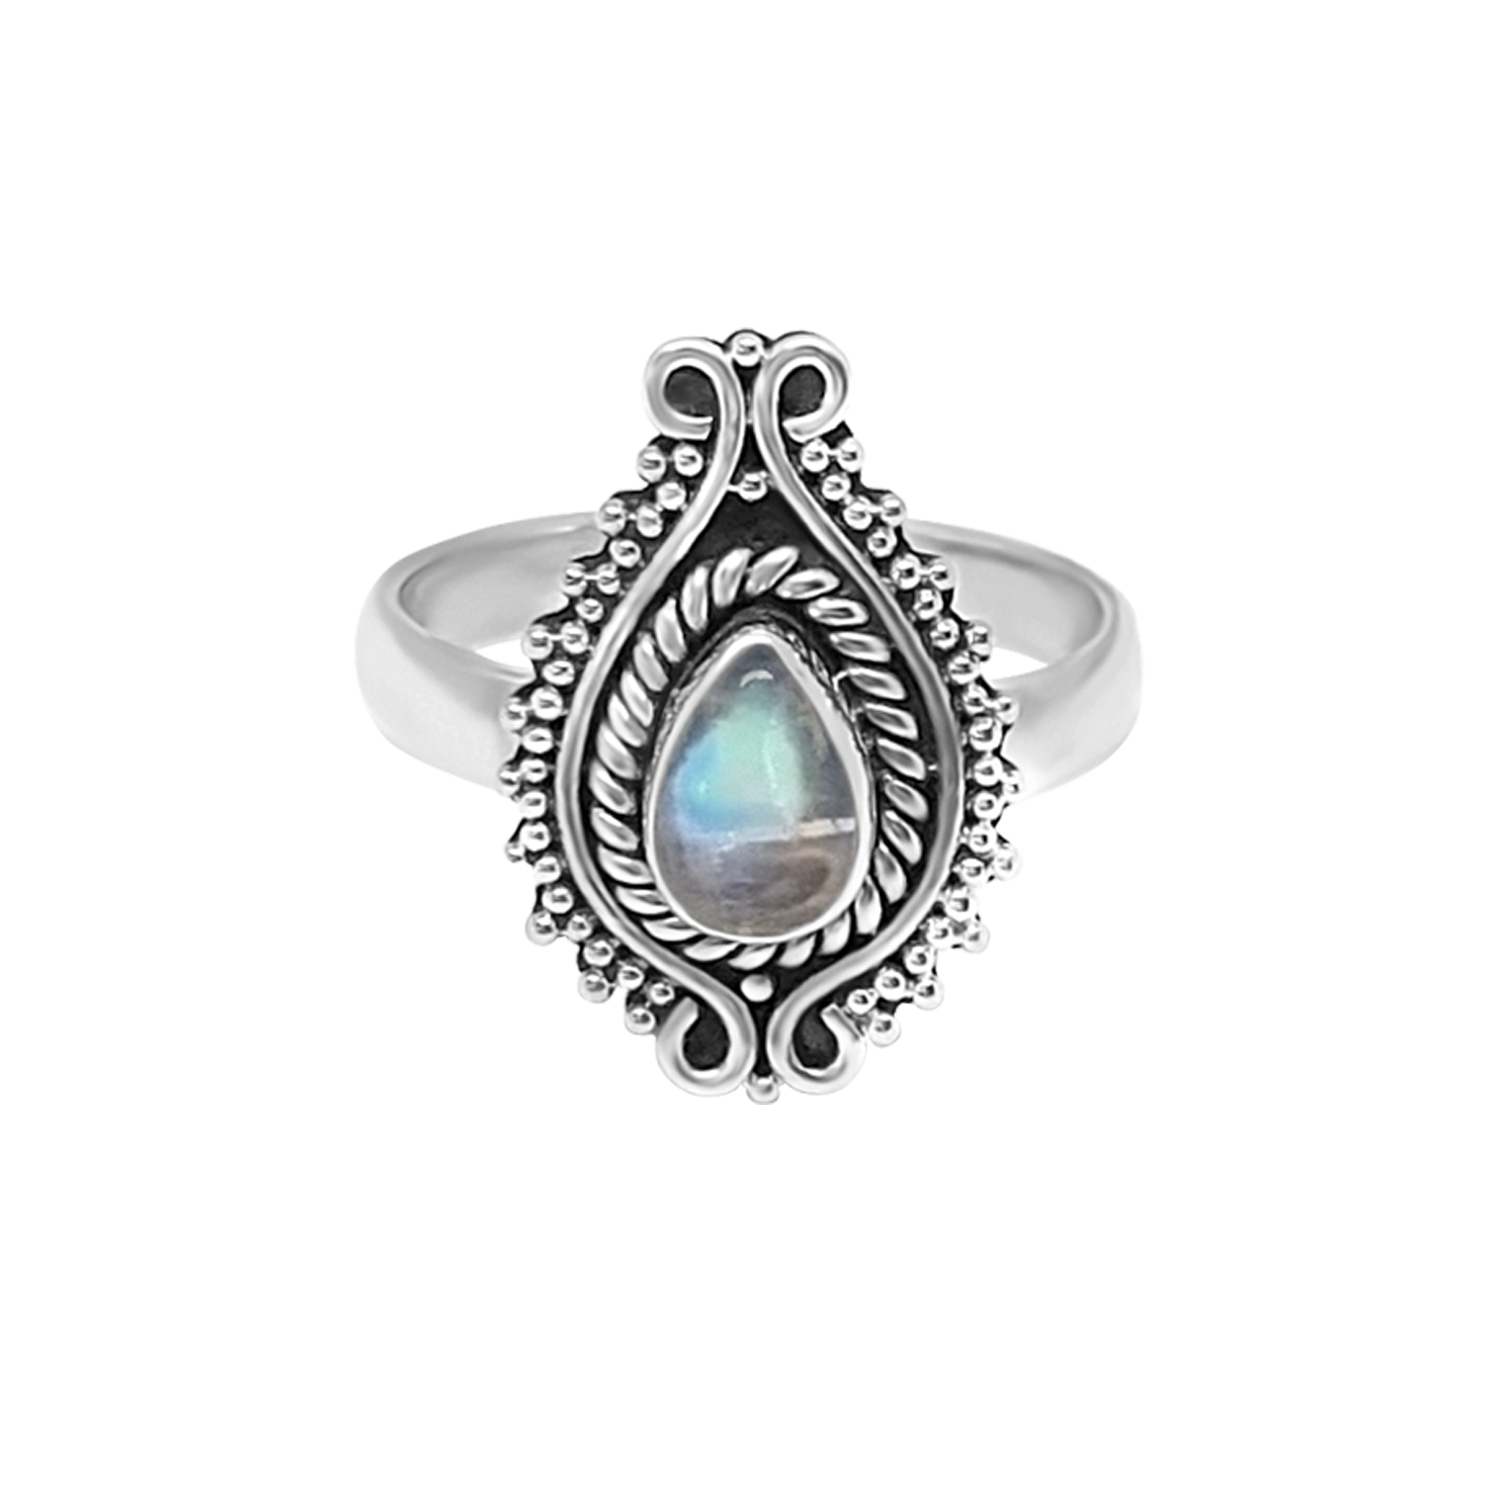 sterling silver ring moonstone bohemian chic style jewelry kemmi collection handmade boho